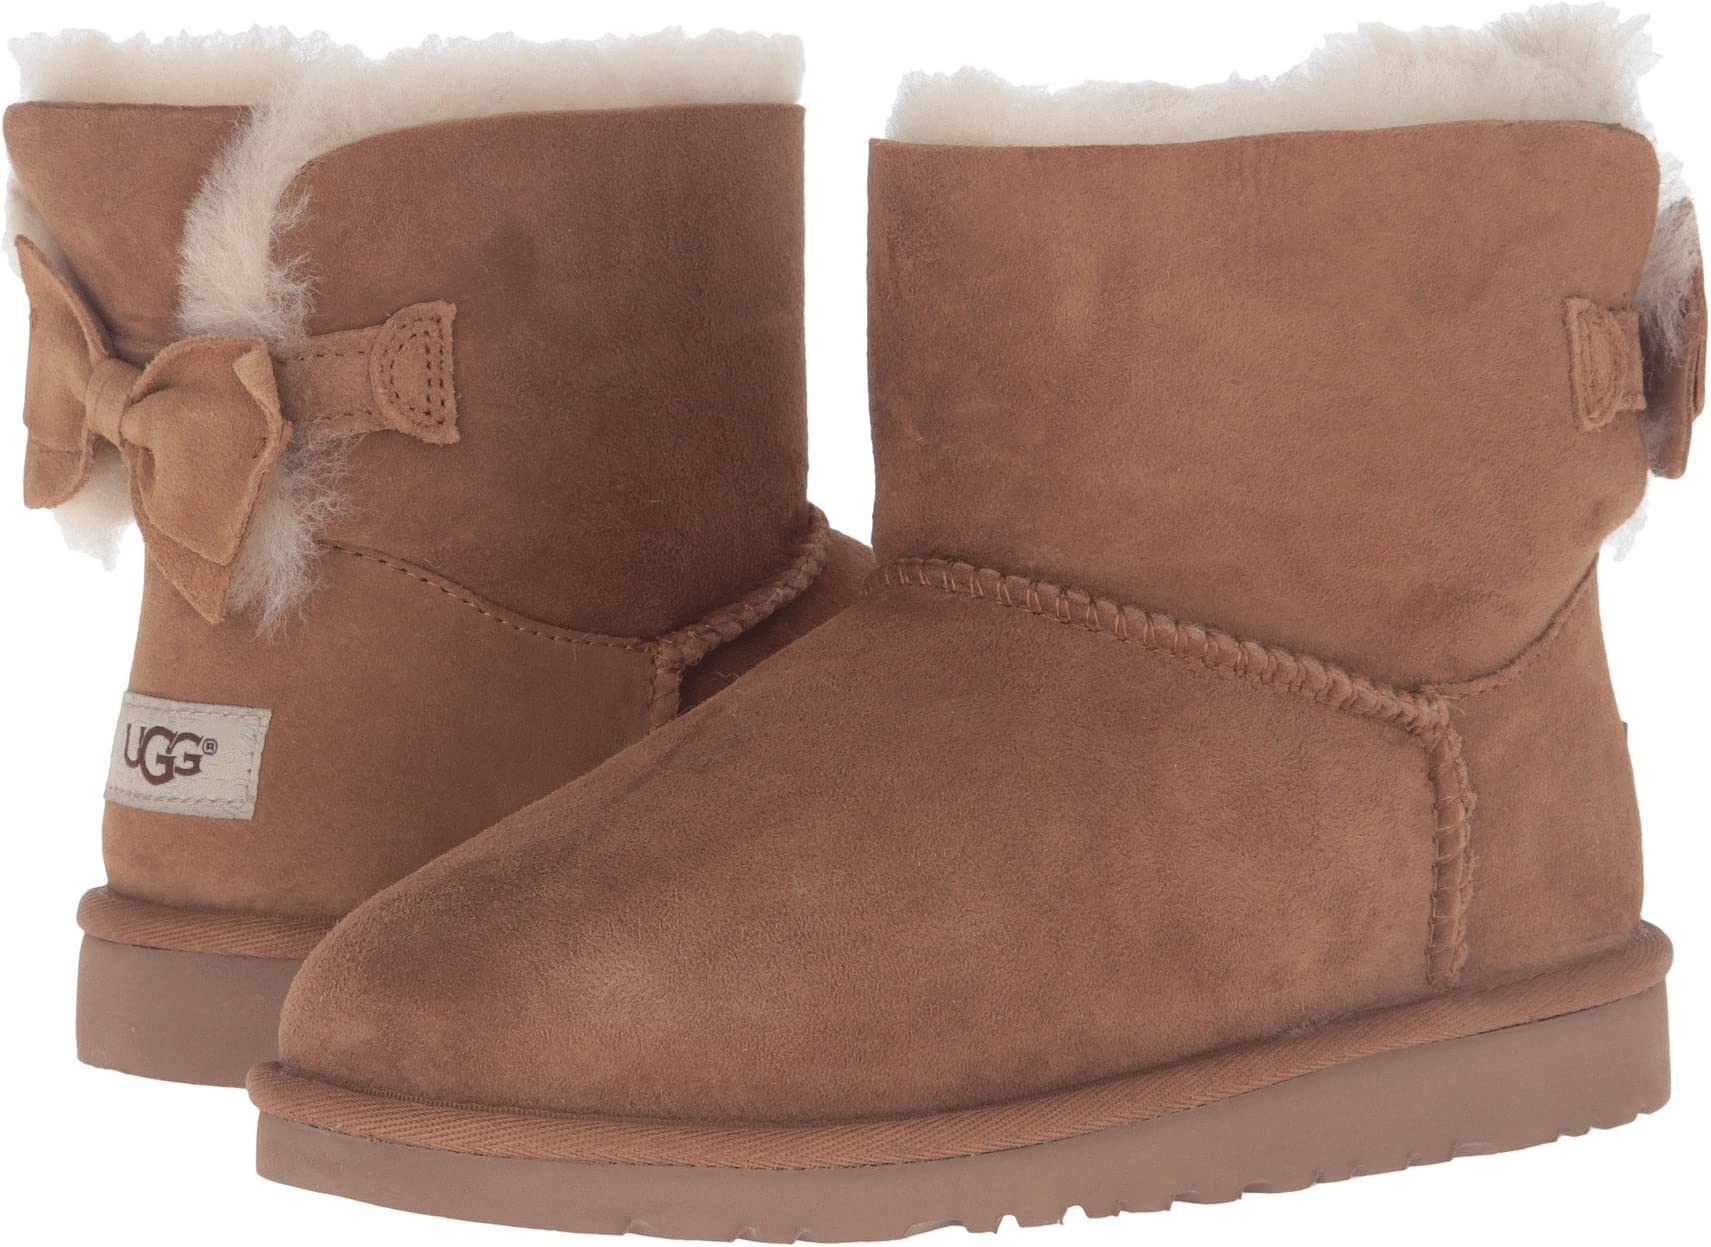 6pm ugg slippers